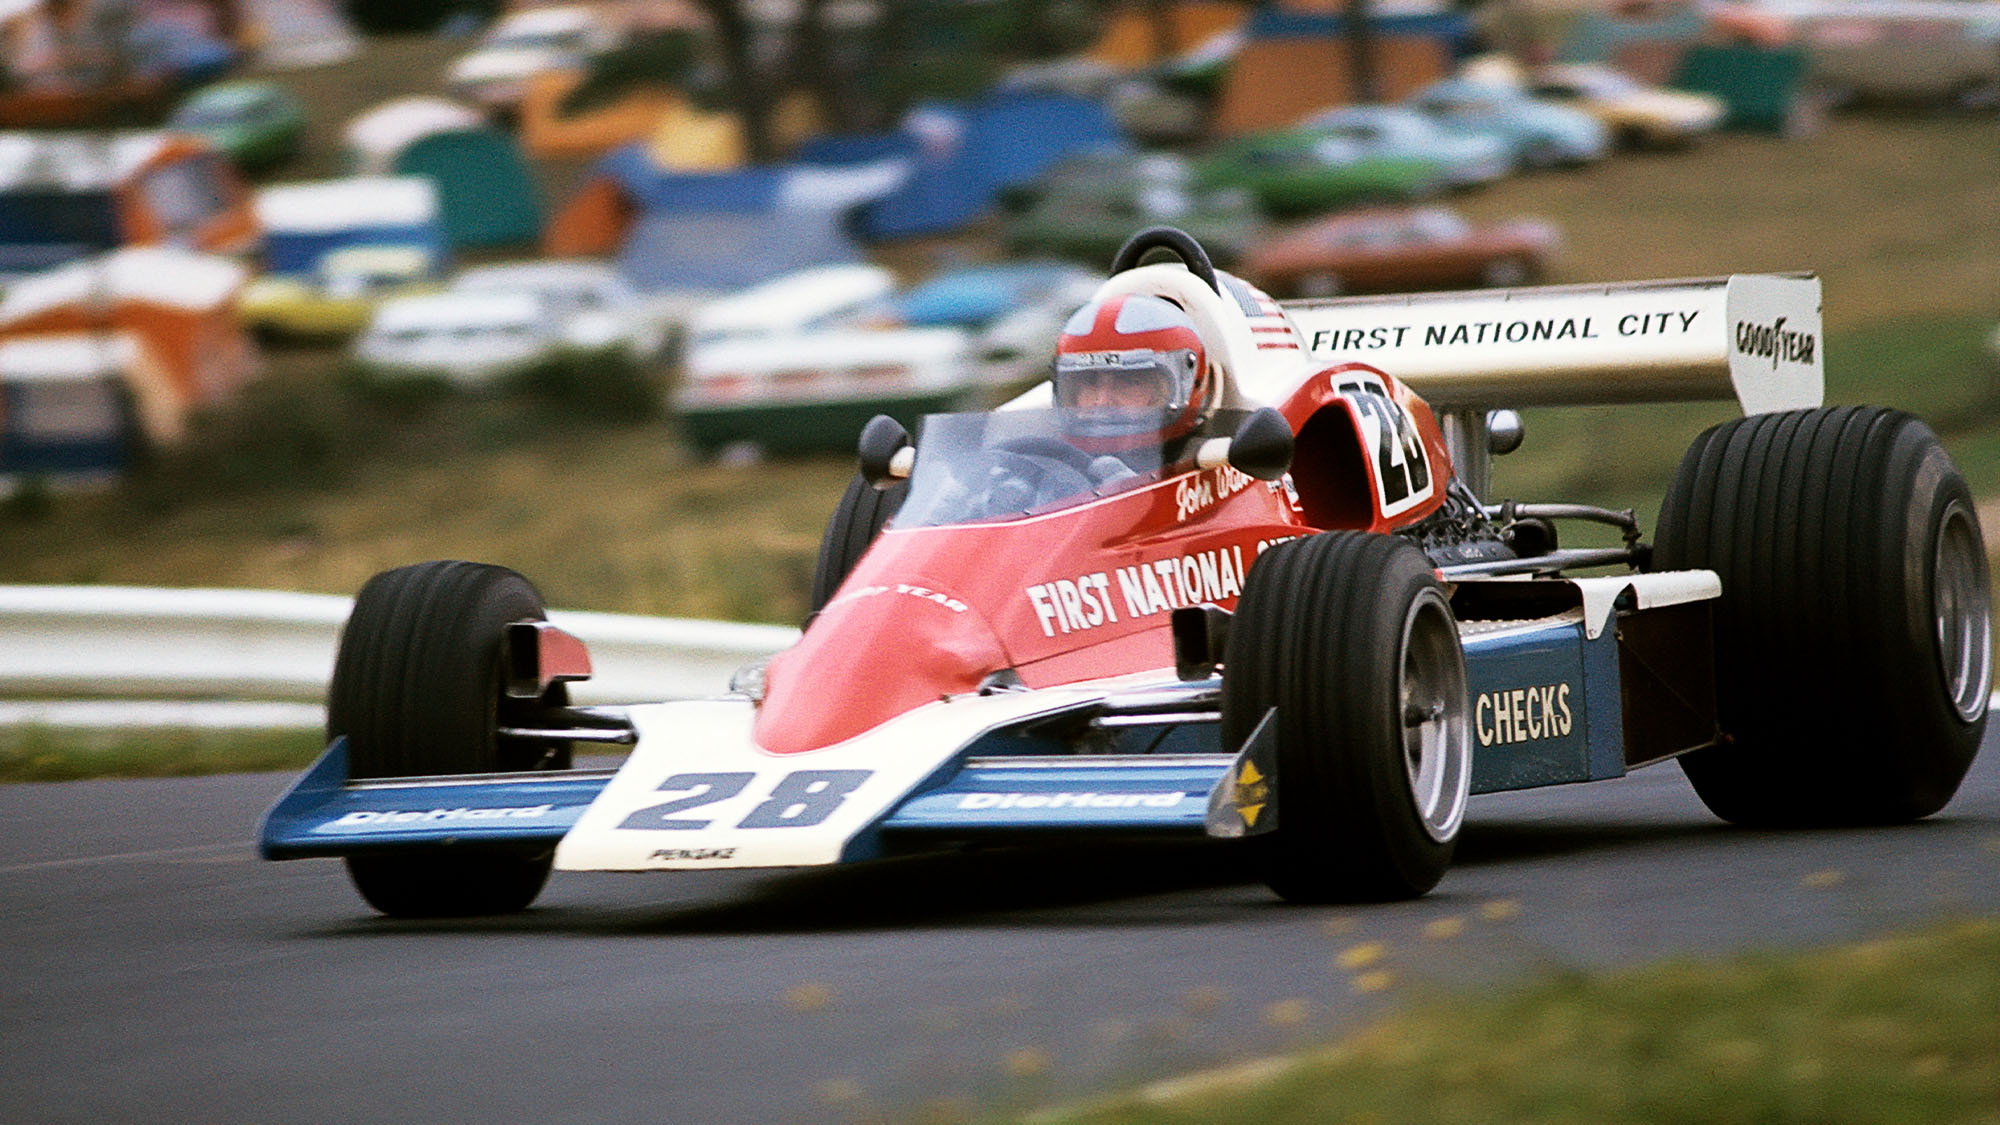 John Watson, Penske-Ford PC4, Grand Prix of Austria, Osterreichring, 15 August 1976. John Watson driving the Penske-Ford PC4 on his way to victory in the 1976 Austrian Grand Prix. (Photo by Paul-Henri Cahier /Getty Images)